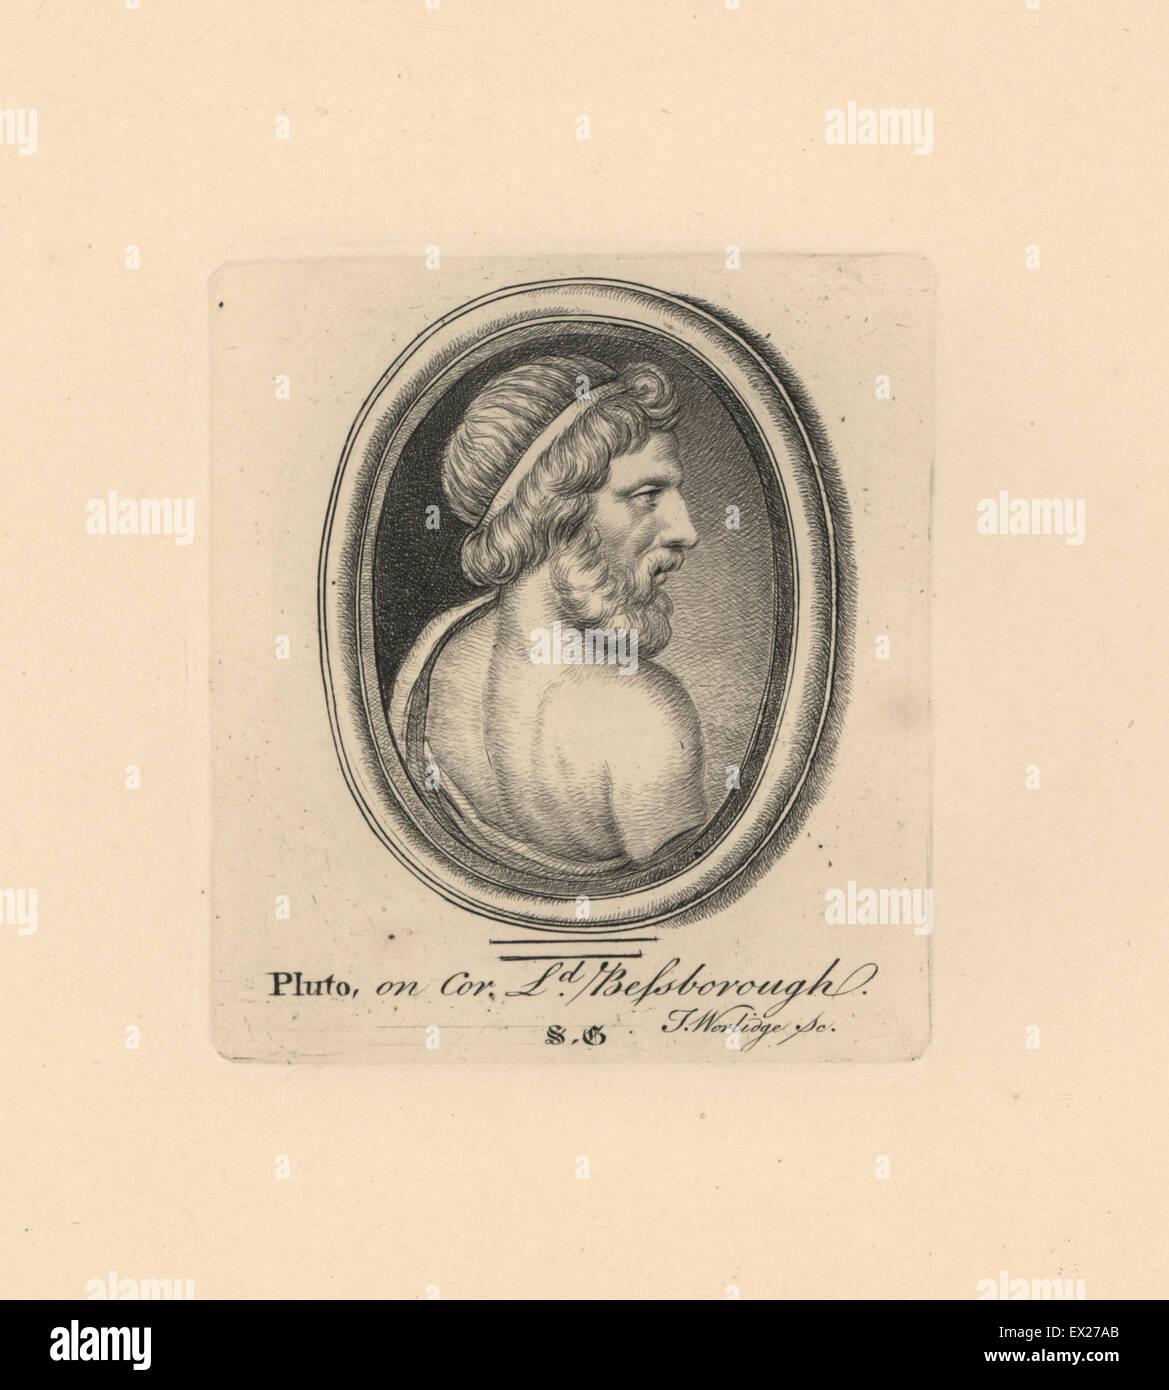 Portrait of Pluto, ruler of the underworld in classical mythology, on cornelian in Lord Bessborough's collection. - Stock Image